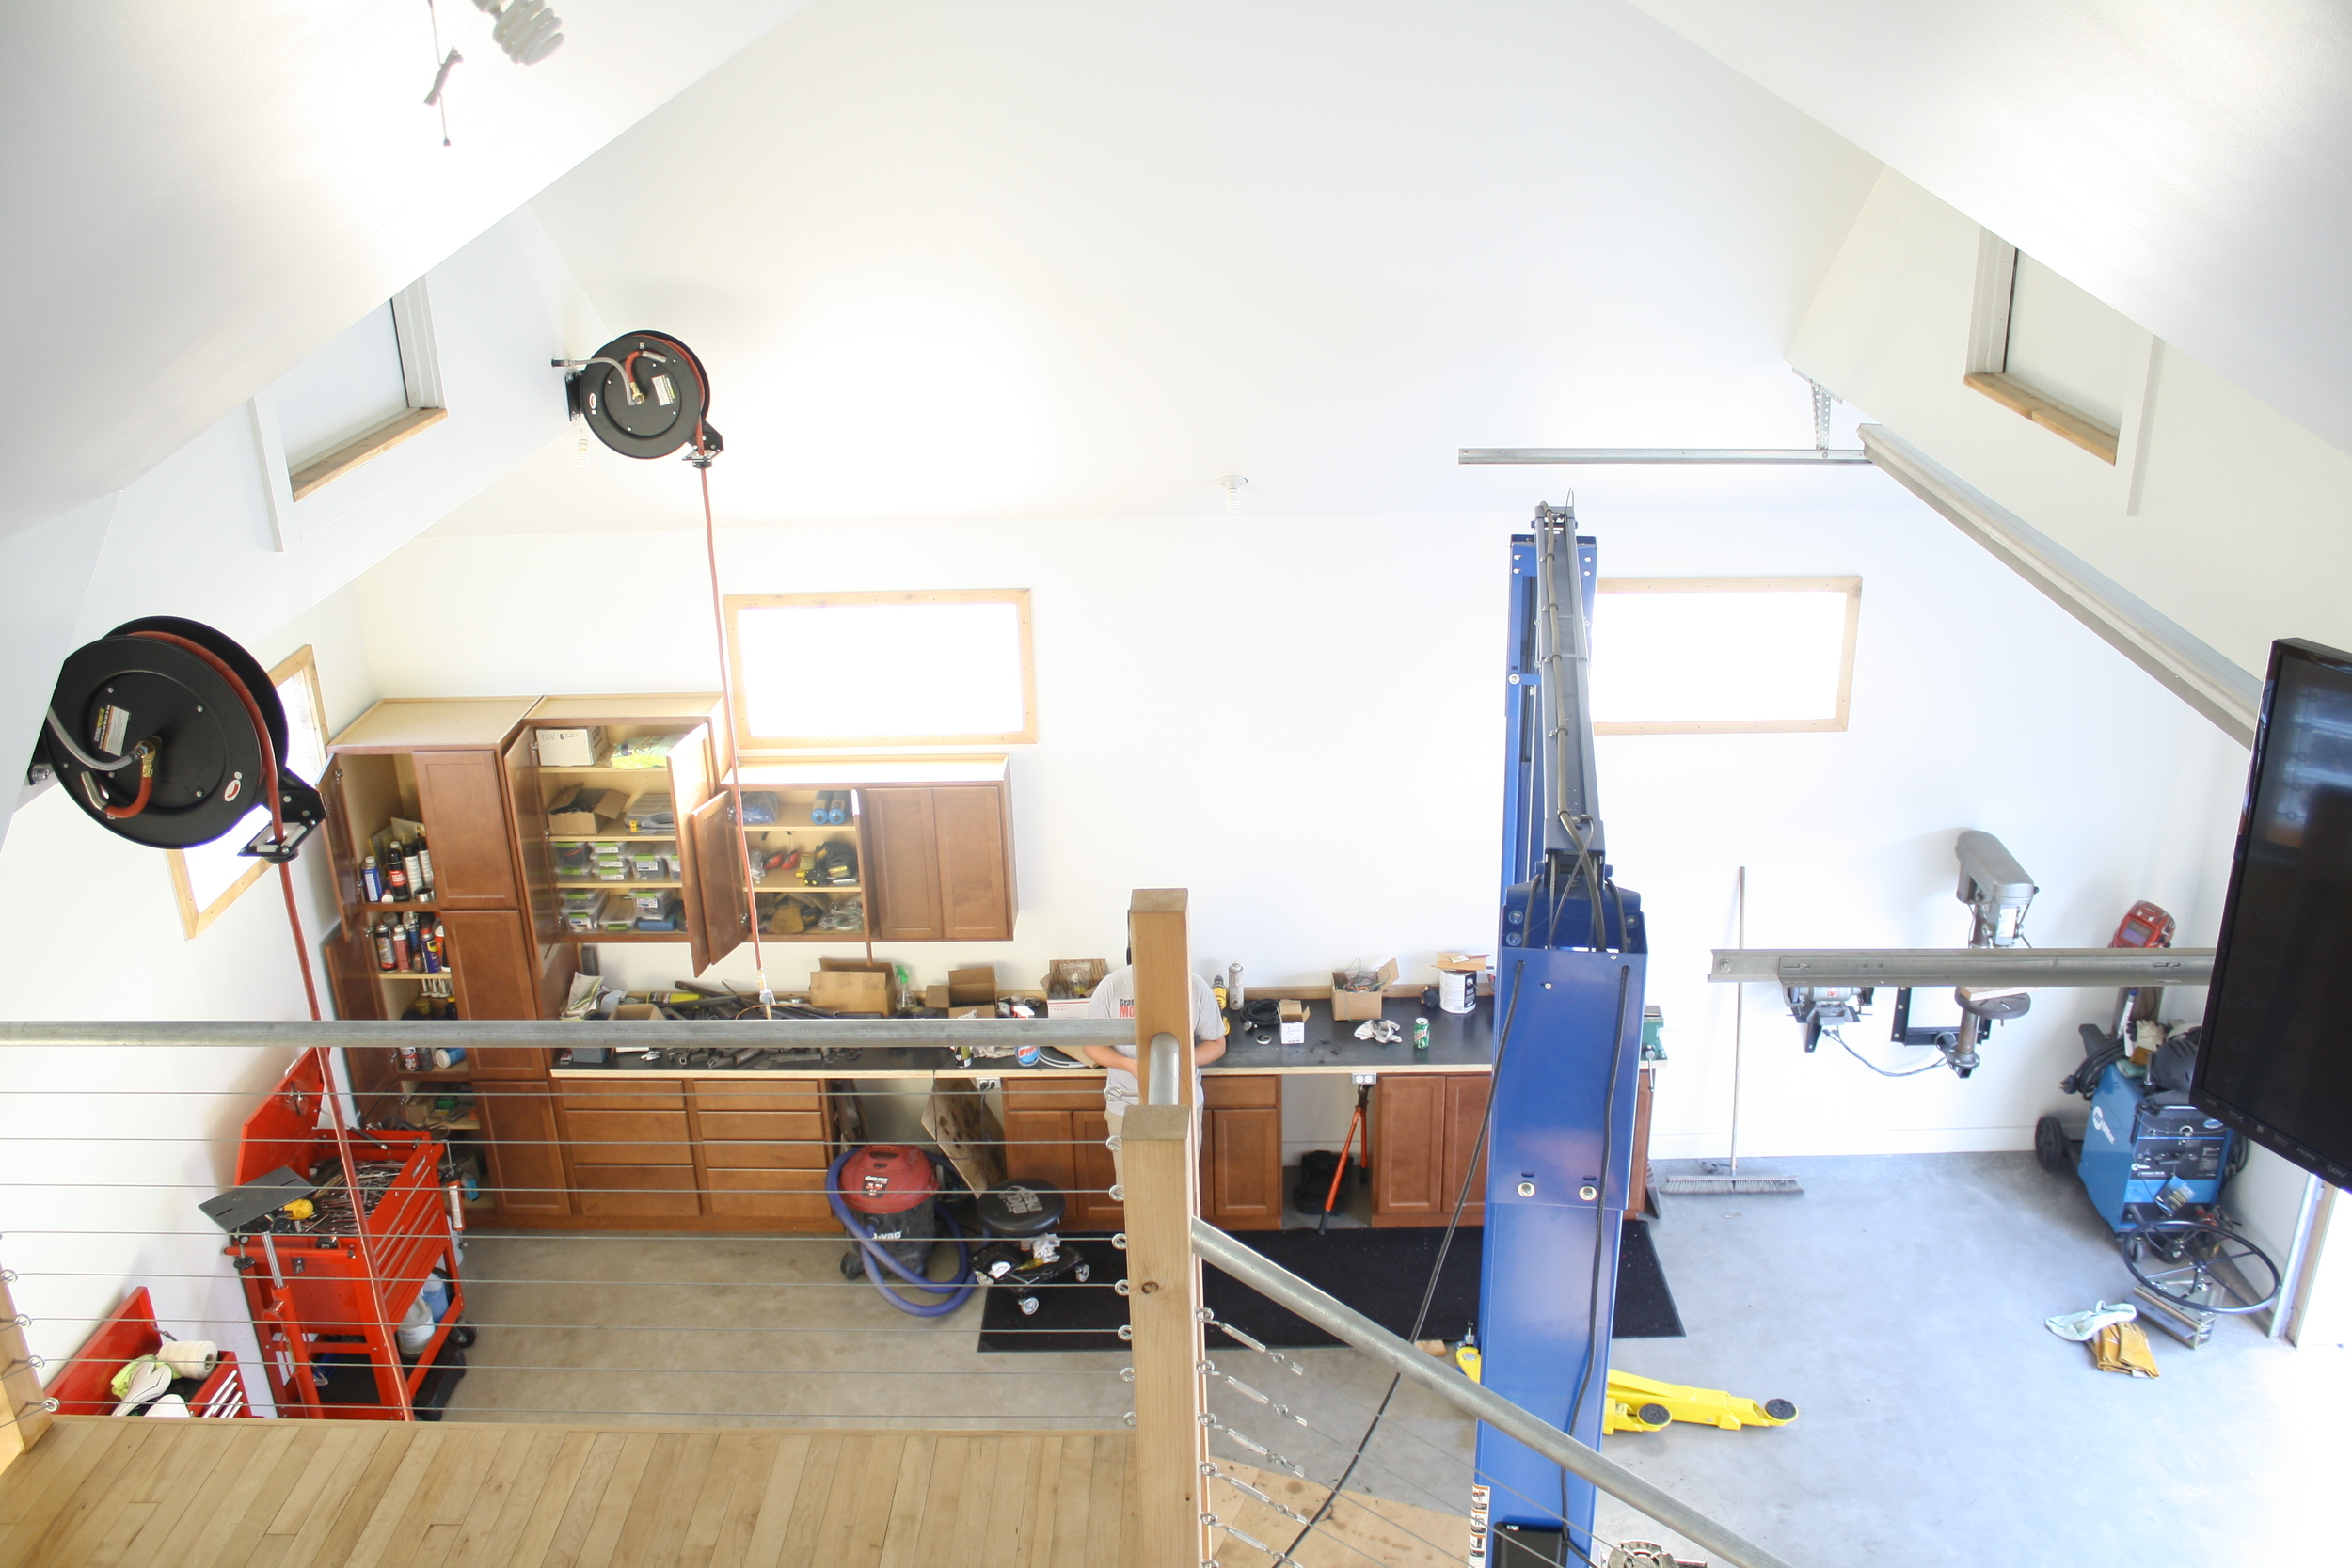 The view down into the shop area